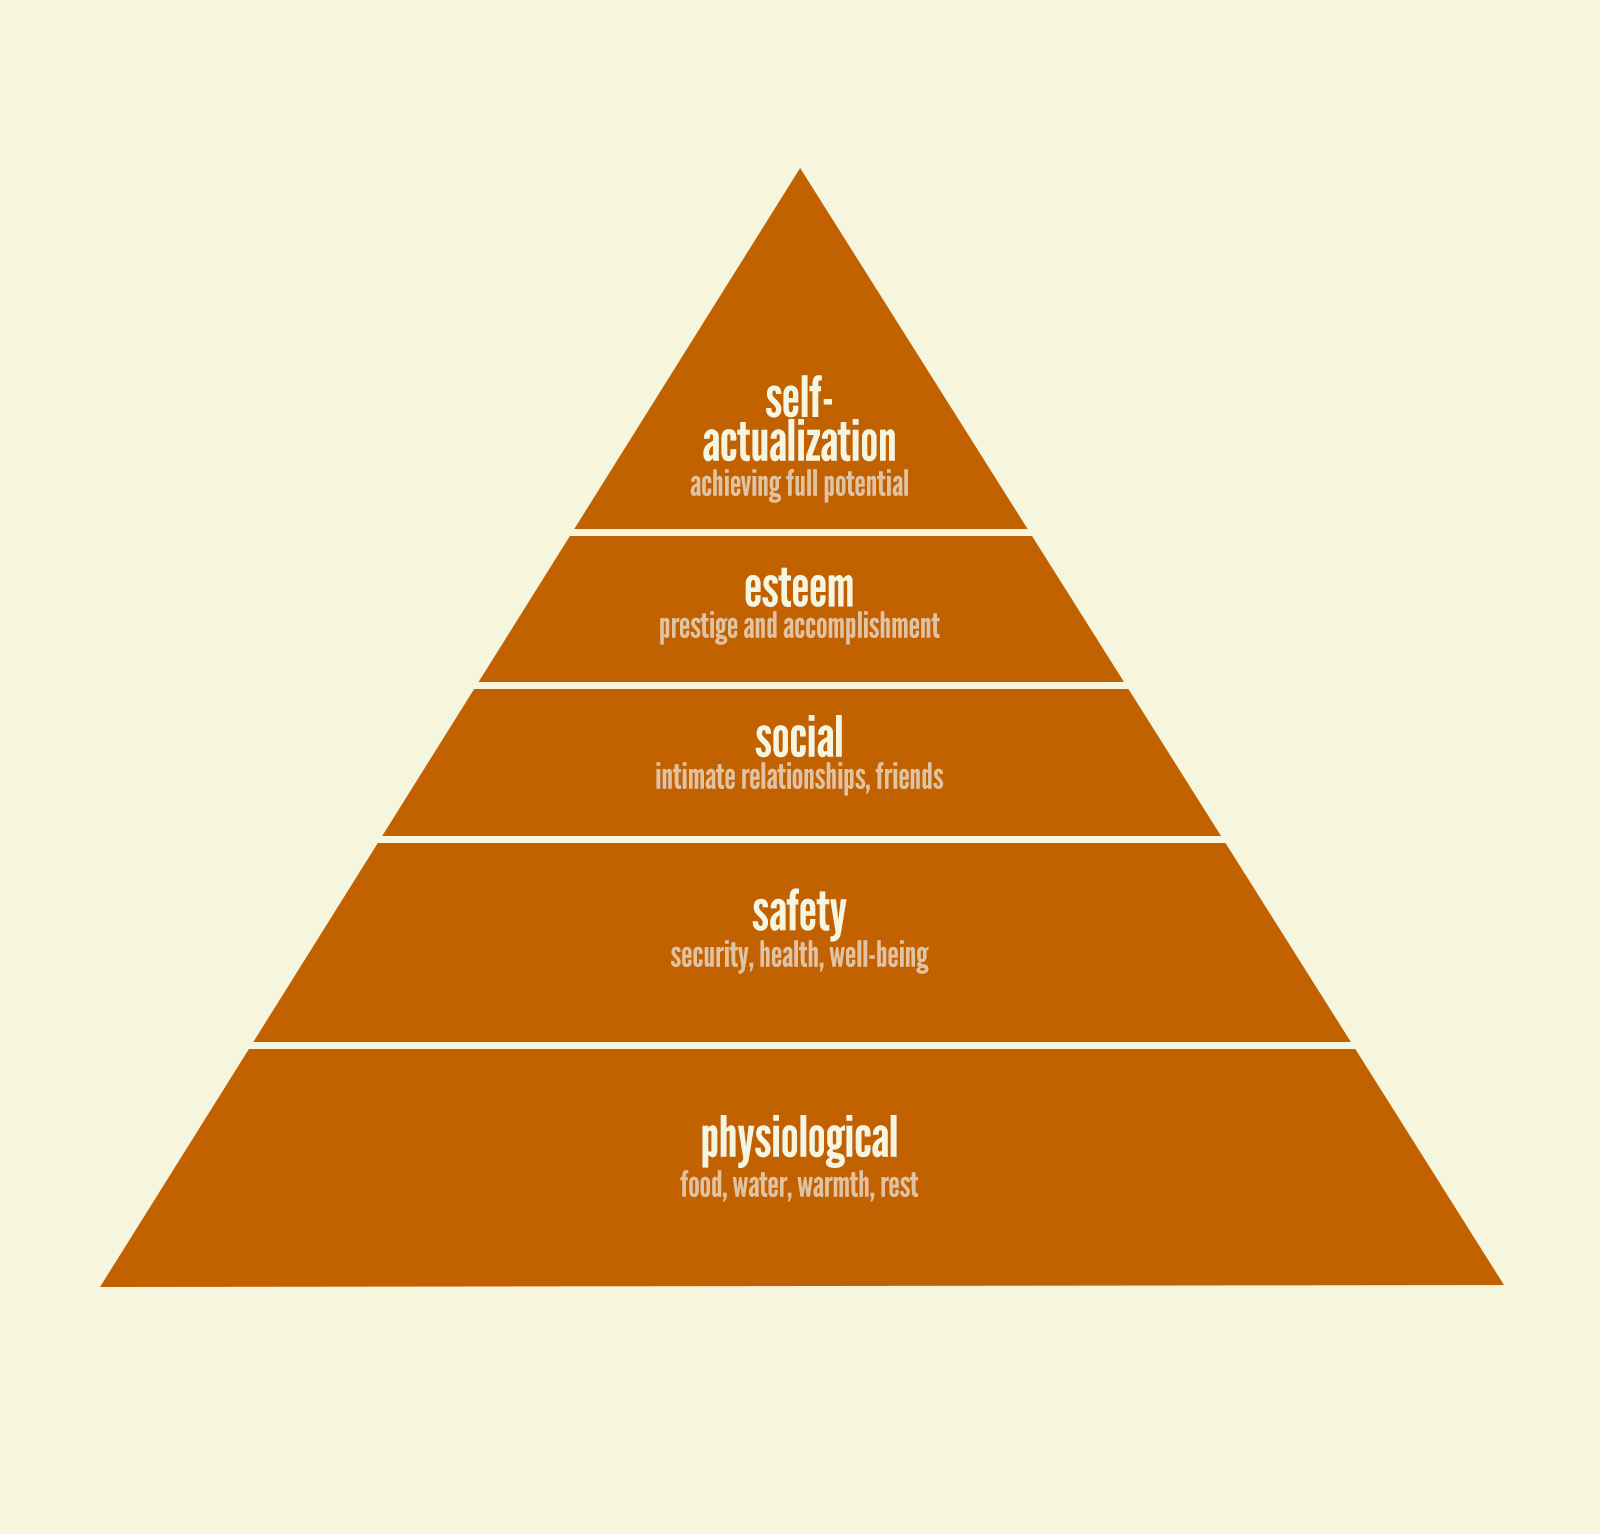 Maslow's Hierarchy of Needs Pyramid: Physiological needs is the base of the pyramid, followed by Safety needs, followed by Social needs, followed by Esteem needs, followed by Self-actualization needs